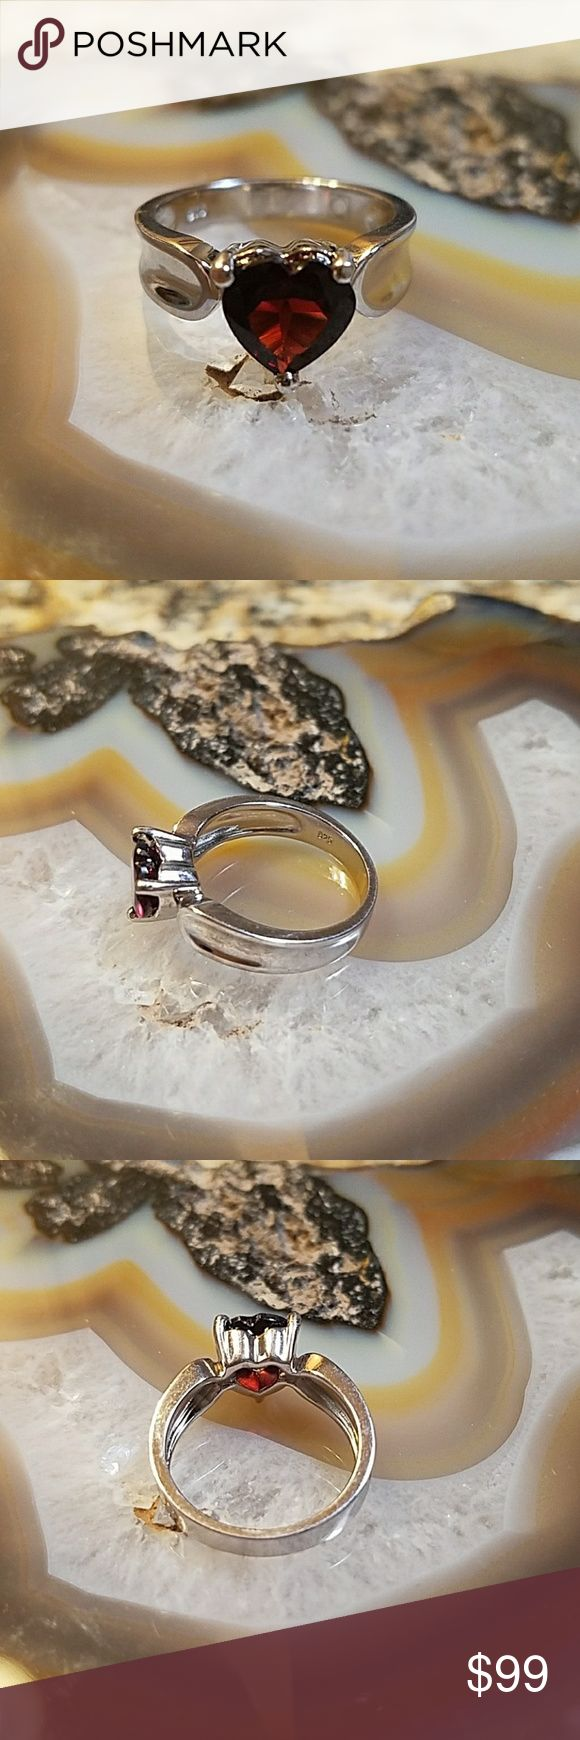 Garnet ring, 18wgp/Sterling ring 18k white gold plated over sterling garnet ring,  size 7  ~~weight 4.4 grams  ~~2.5 carats genuine garnet  ~~beautiful,  well made  ~~stamp .925 in several pic, Maker circle in box pictured  ~~boutique item, comes in plain box  Offers welcome  ♡♡Or add to a bundle for a private no obligation offer from me via dressing room  ☆Non smokers tho we do have pets so a stray hair might transfer.  Items are stored away from pets. Jewelry Rings